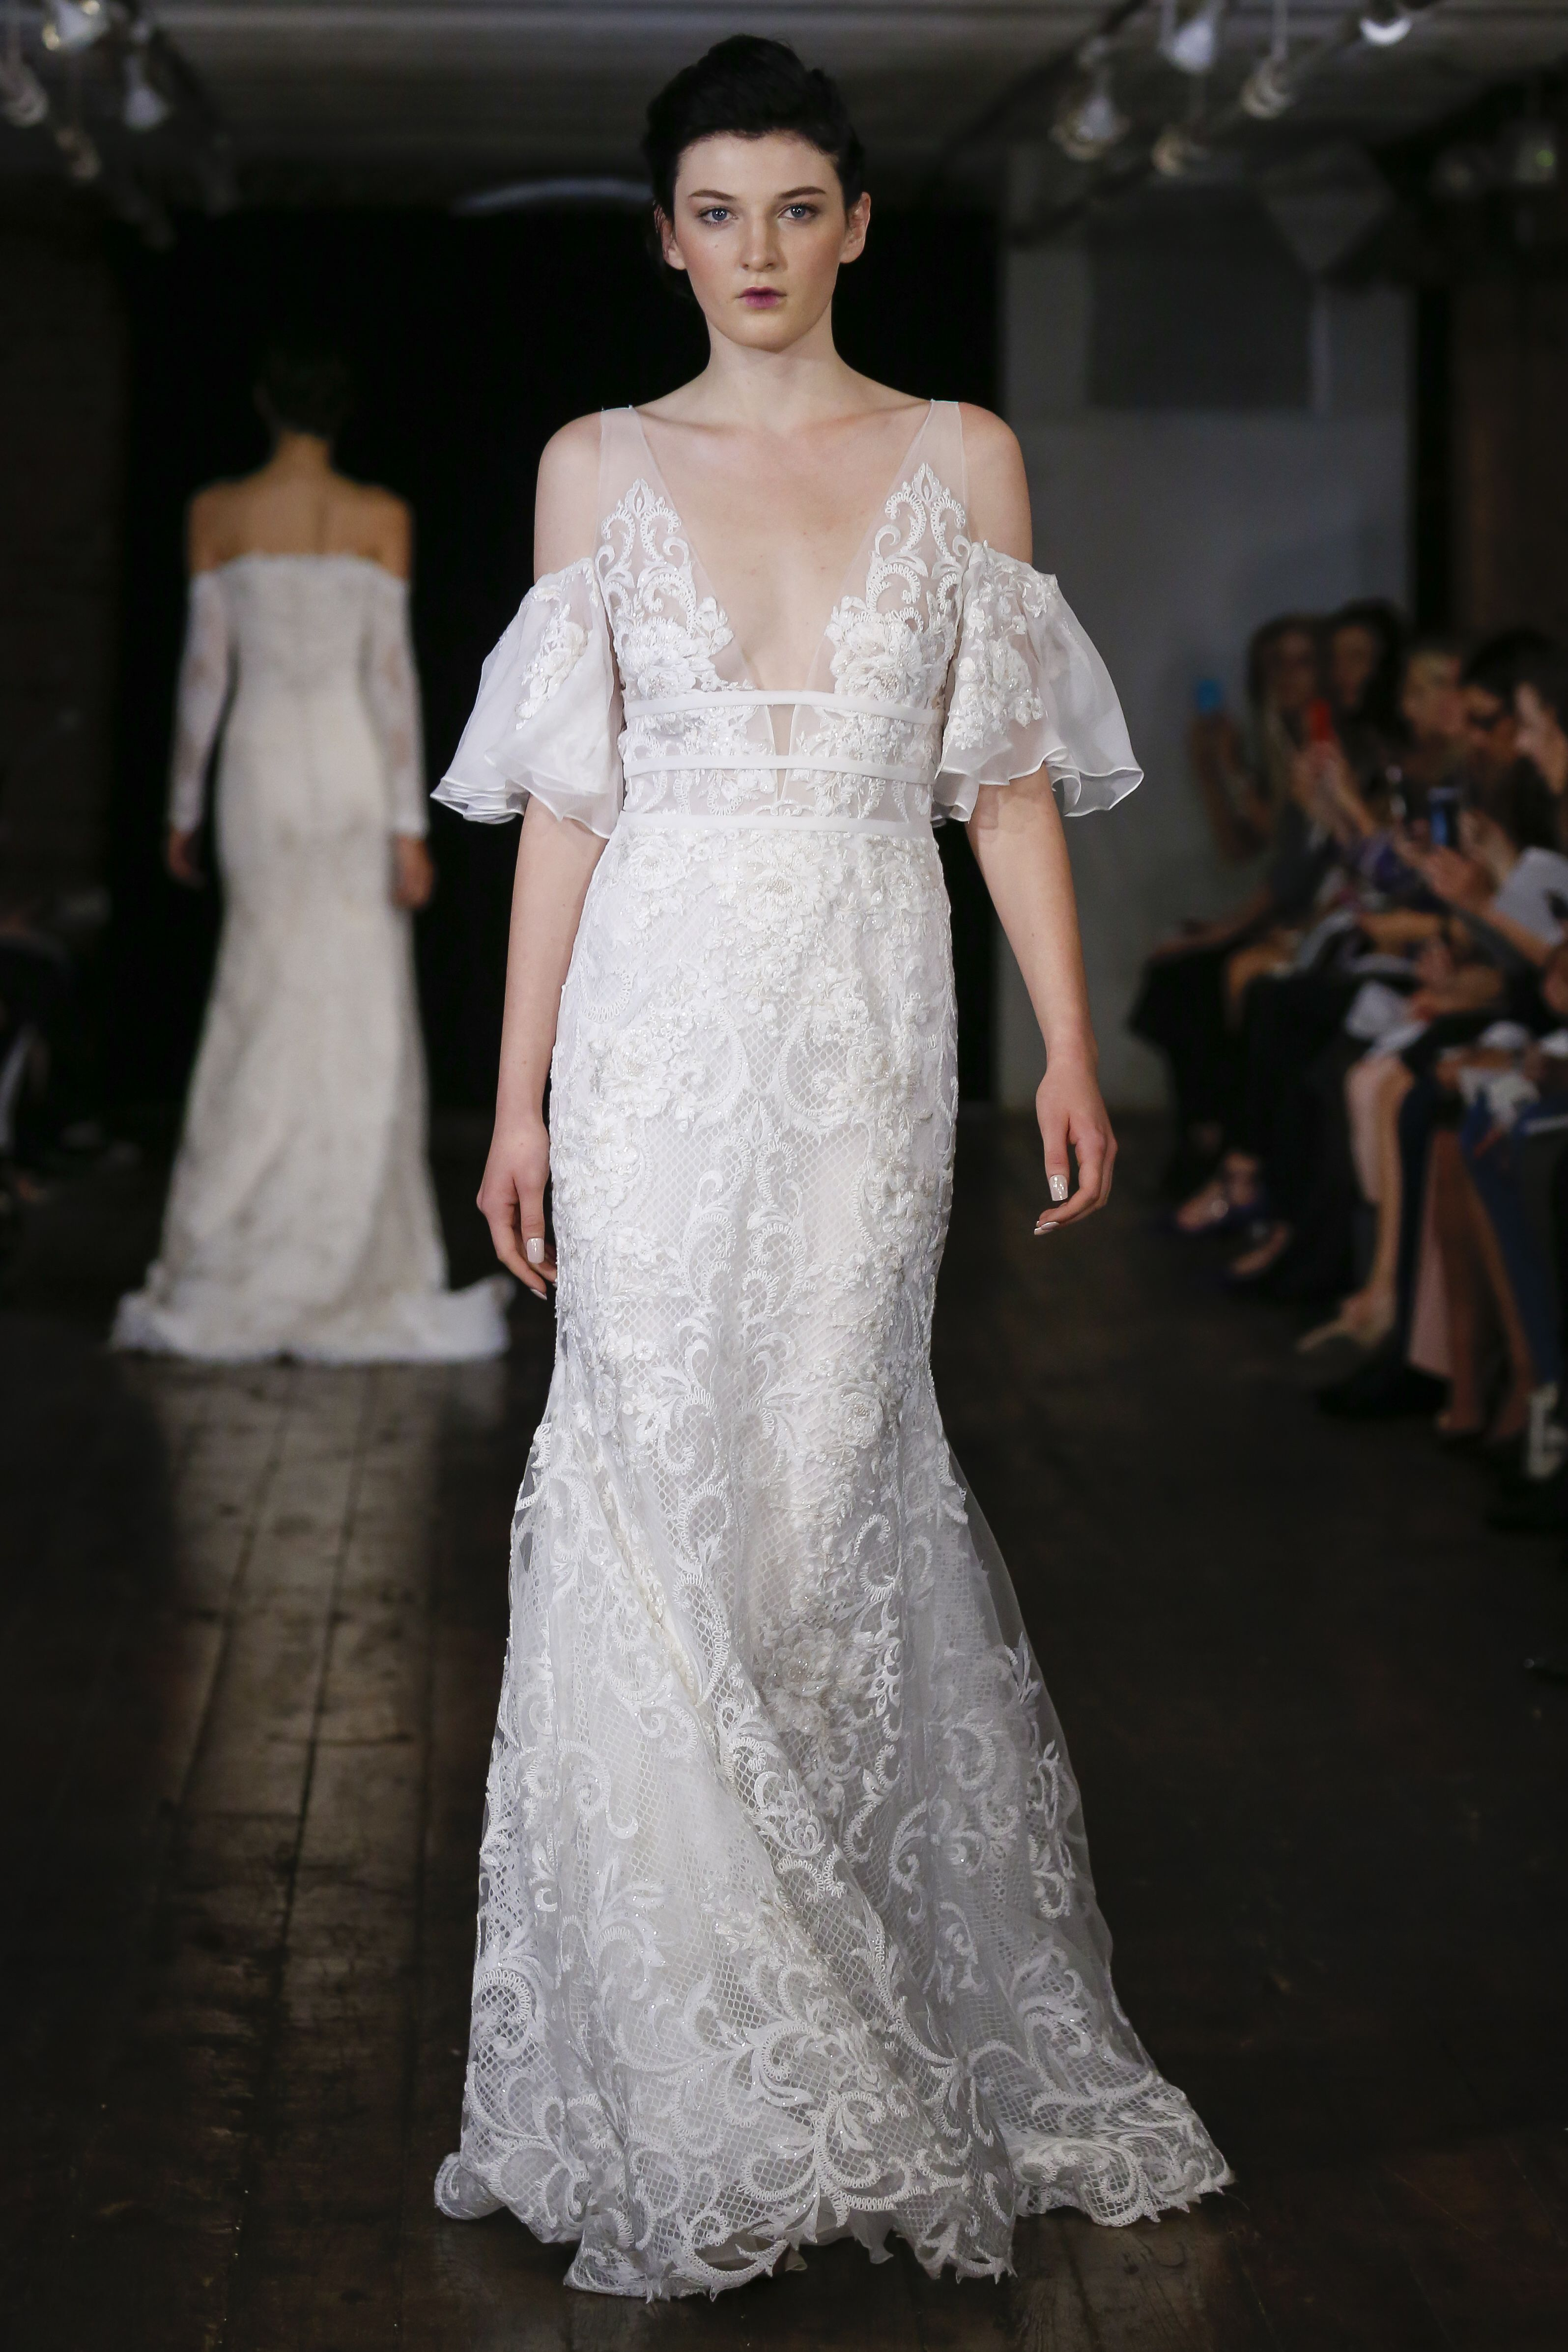 Flowy wedding dress with sleeves  Lace wedding dress from the FallWinter  Rivini Collection from